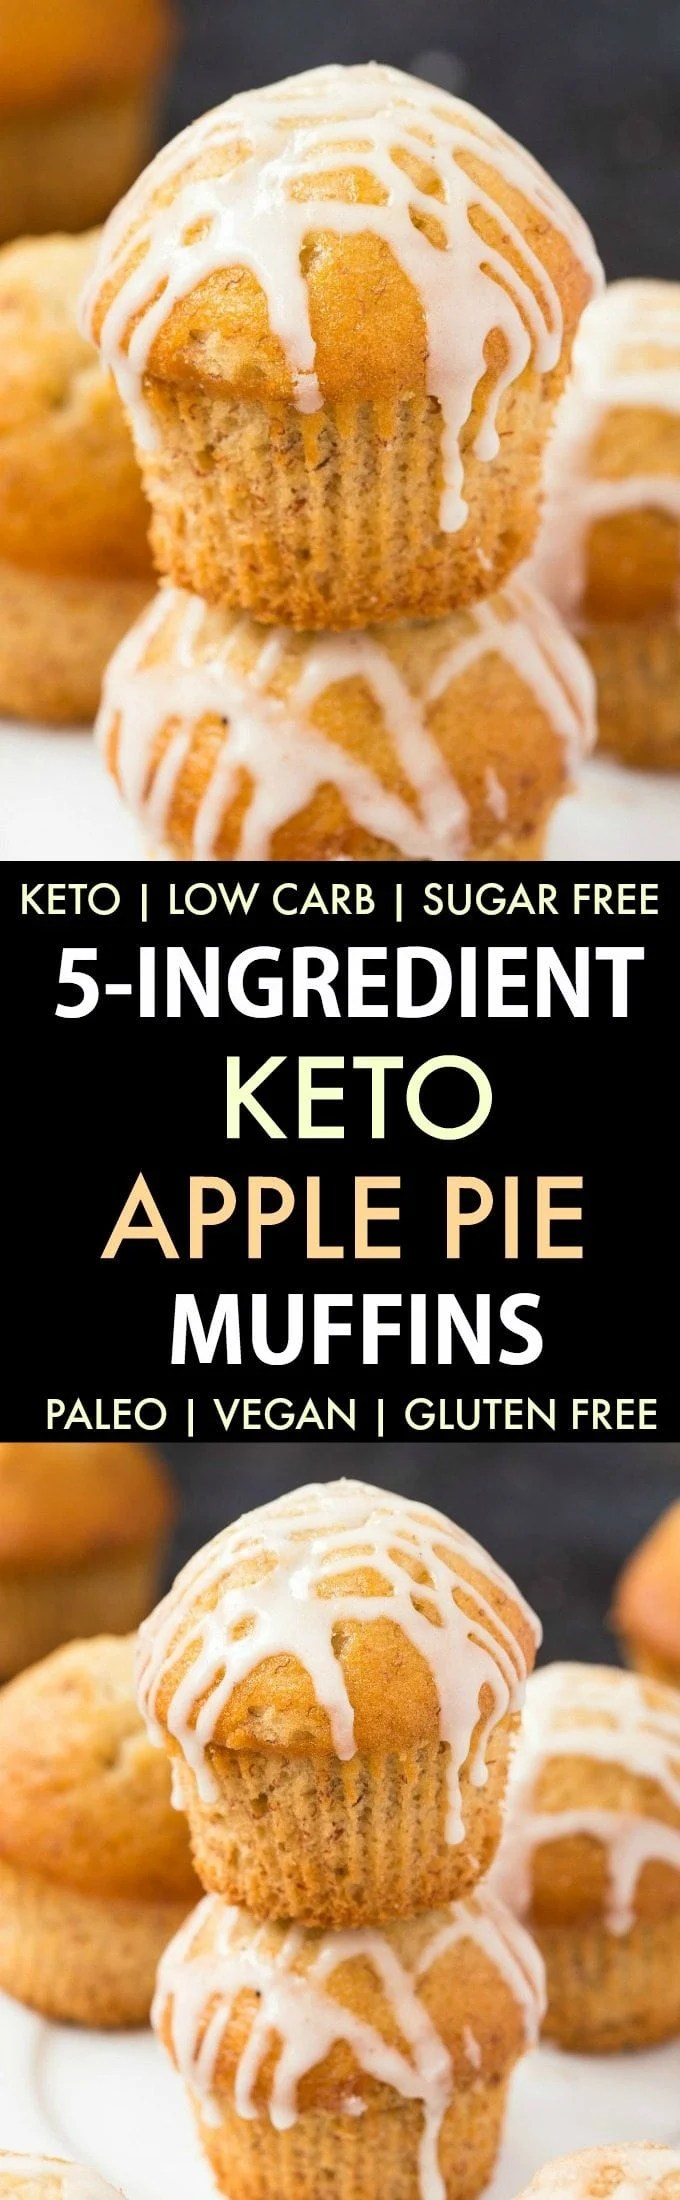 5-Ingredient Low Carb Apple Pie Muffins (Keto, Paleo, Vegan, Sugar Free)- Fluffy bakery style apple pie muffins using 5 ingredients and made with NO eggs and NO sugar- The ultimate guilt-free snack or dessert! #ketobaking #ketorecipe #lowcarbrecipes #protein | Recipe on thebigmansworld.com